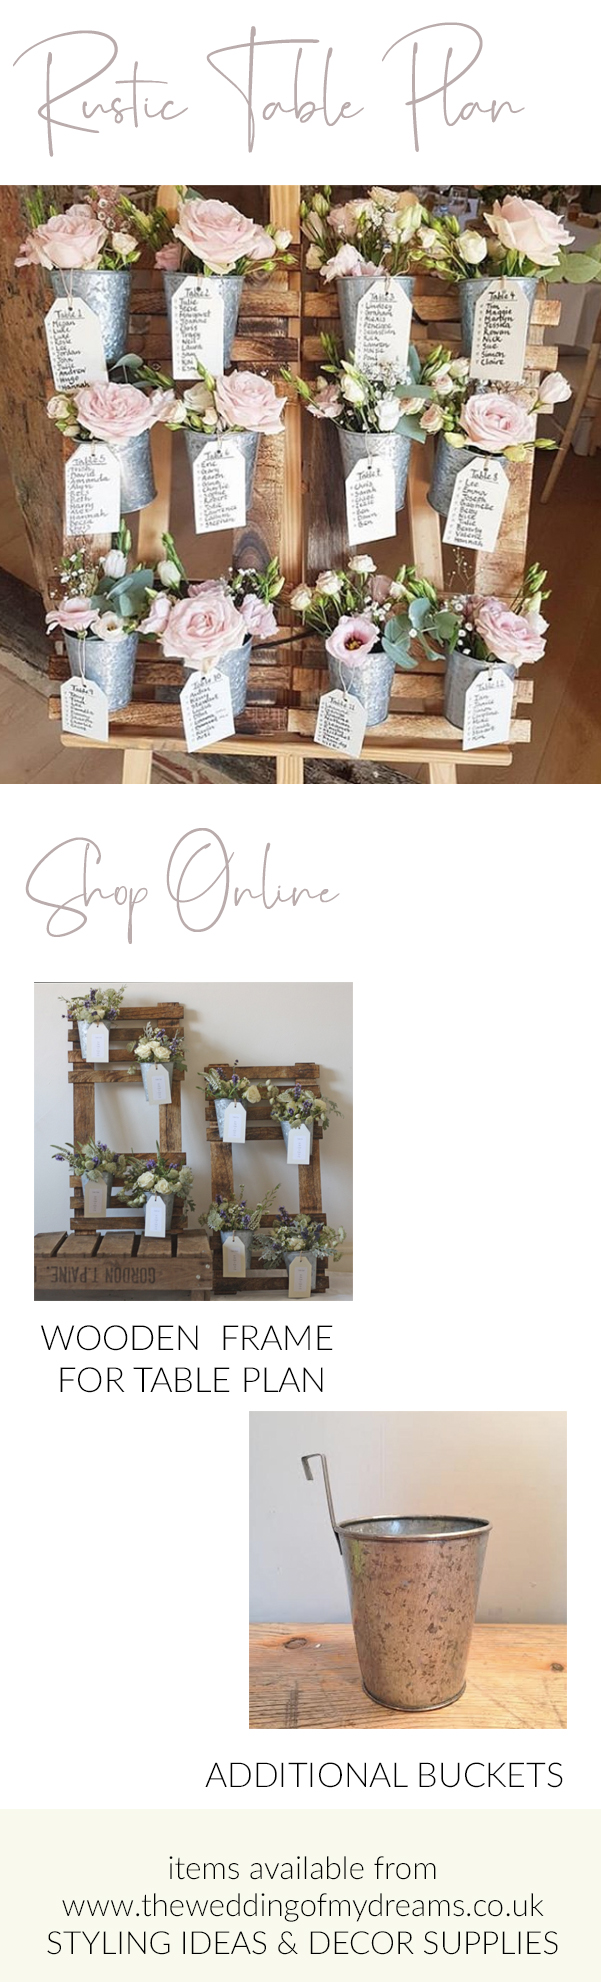 Rustic wooden wedding table plans available from The Wedding of my Dreams